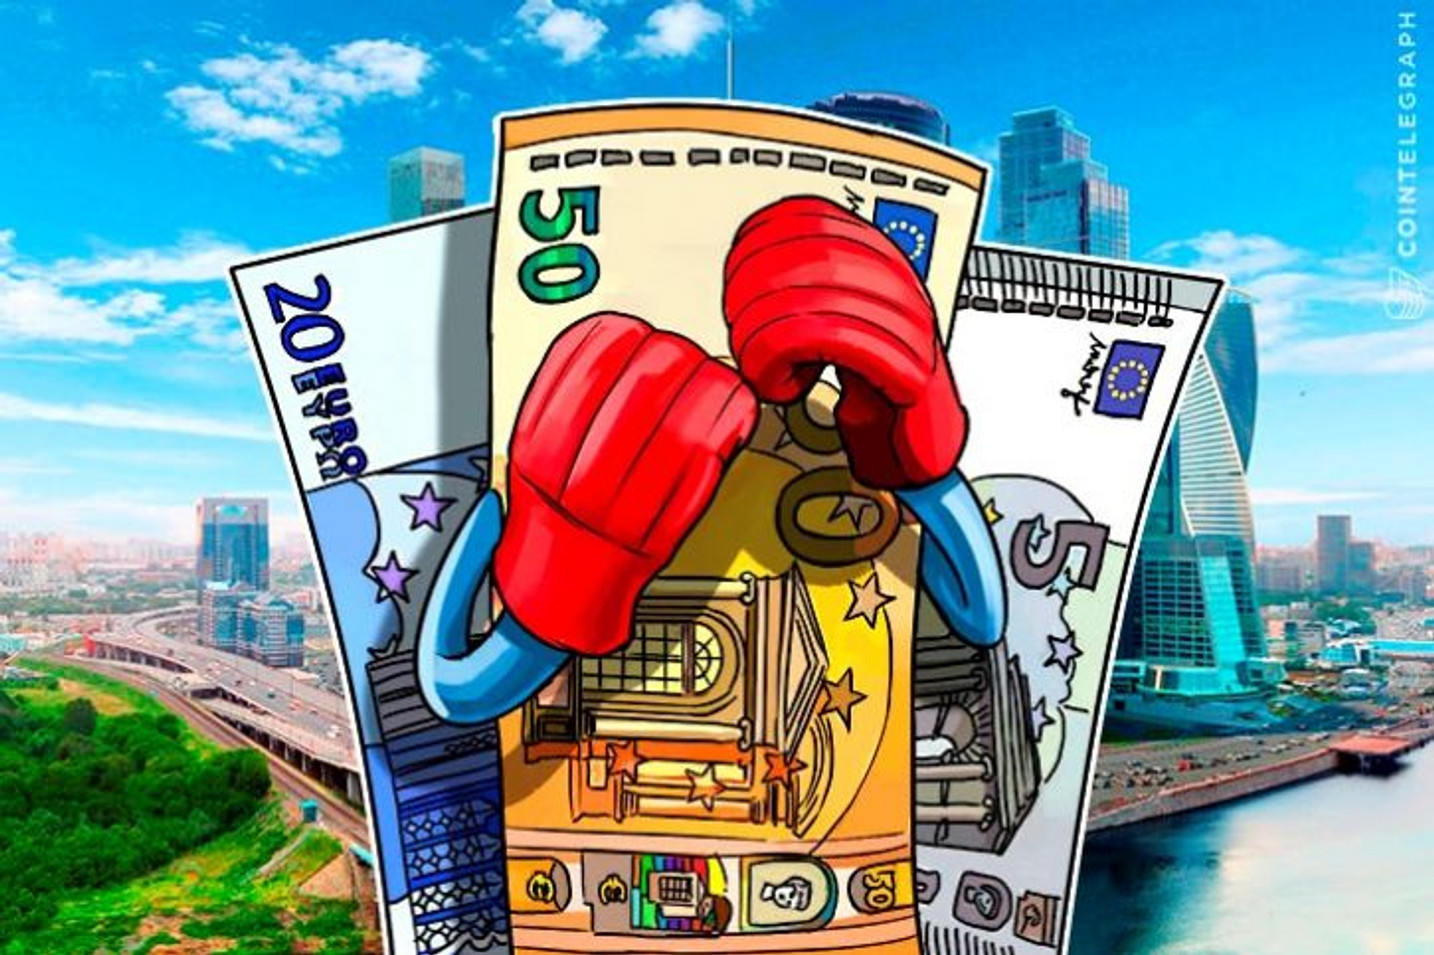 Bitcoin Price Spooked by China, EU Regulatory Elephant In The Room